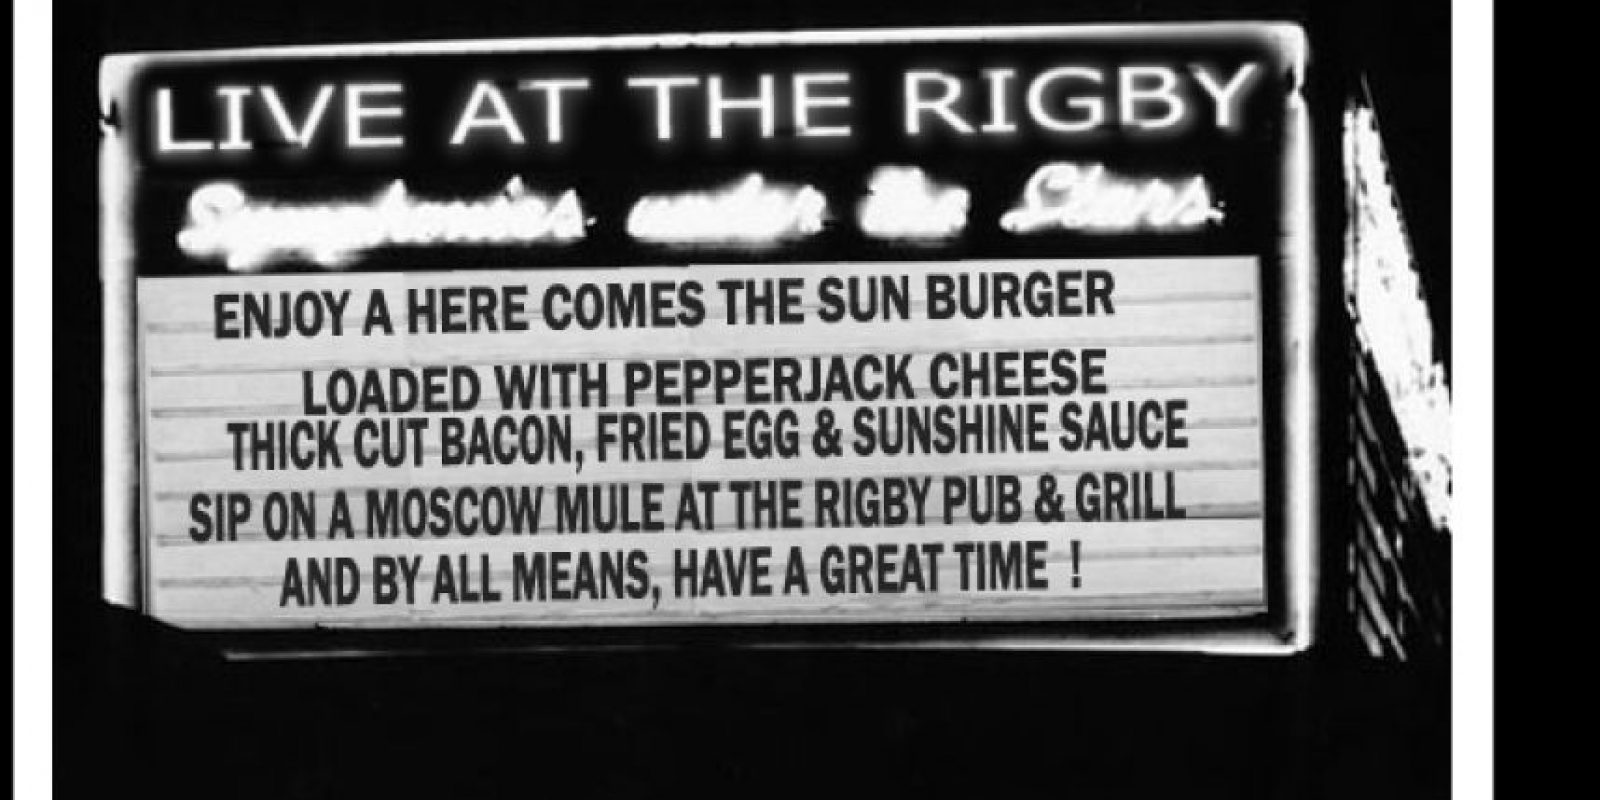 The Rigby Pub and Grill, Madison, Wisconsin Foto:therigbypub.com. Imagen Por: